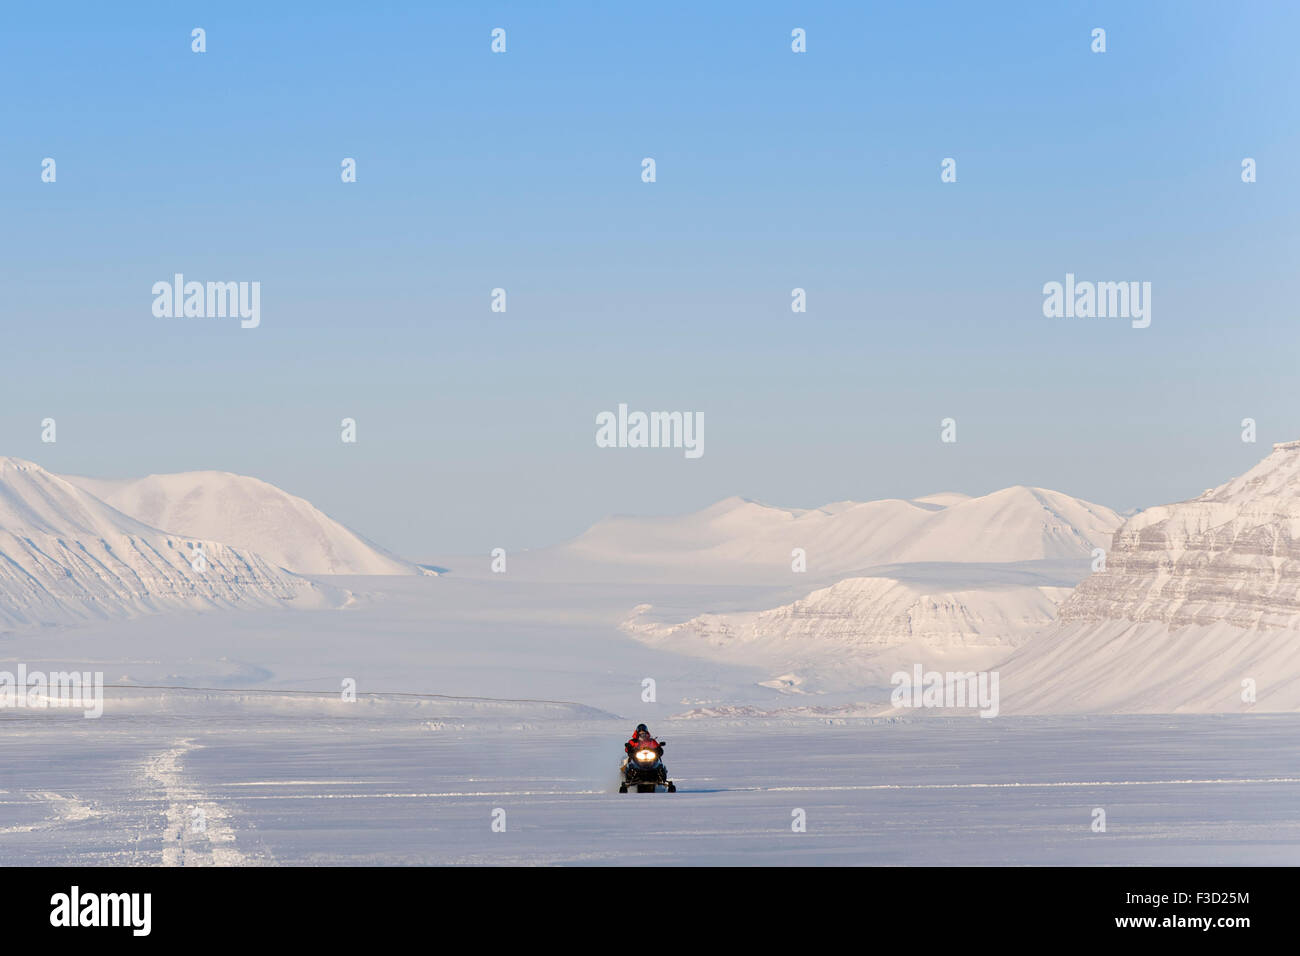 Man on snowmobile on it's way in a snowcovered landscape with Tunabreen glacier behind, Tempelfjorden, Spitsbergen, - Stock Image